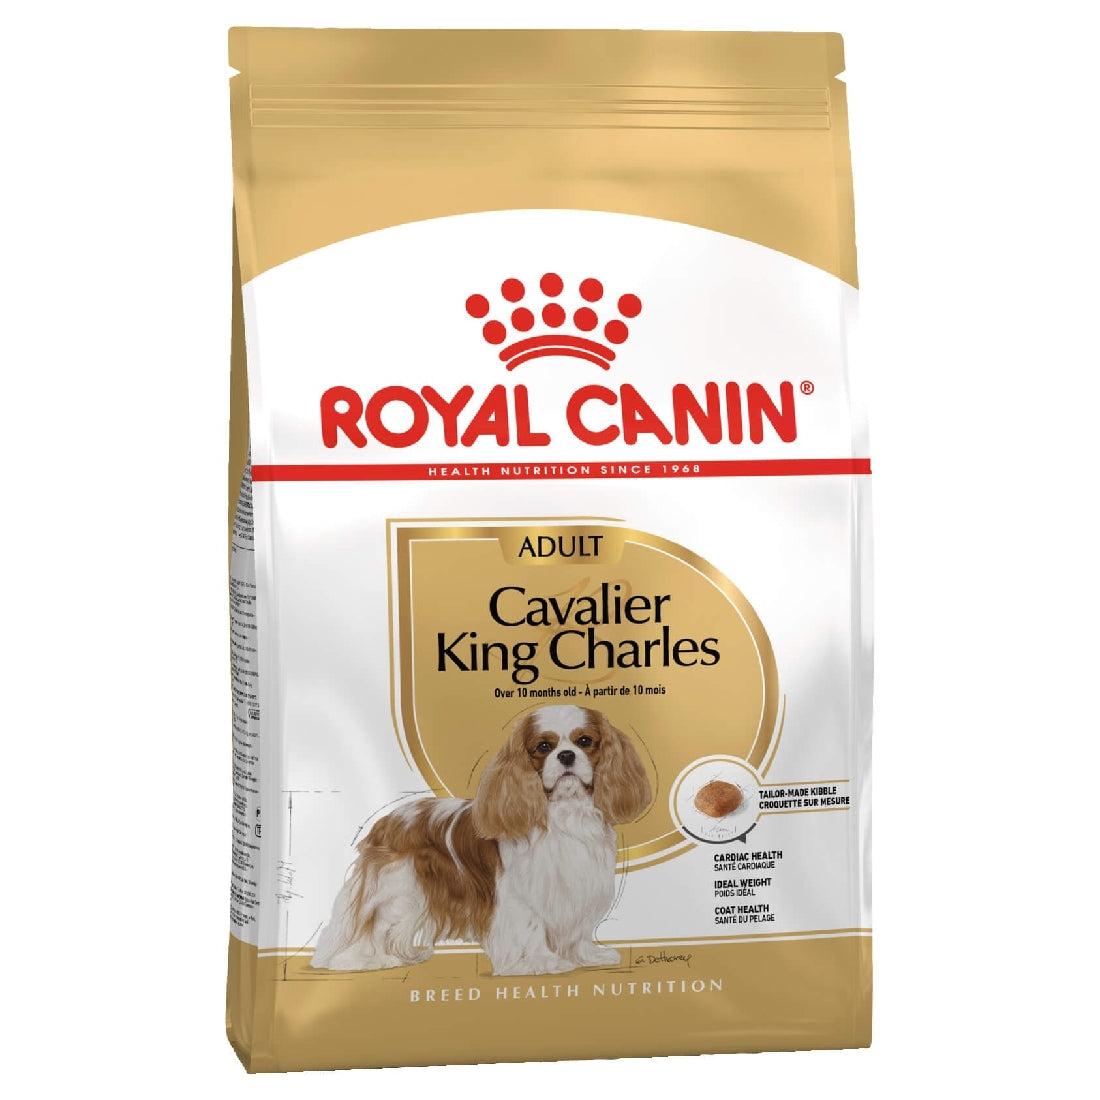 ROYAL CANIN CAVALIER KC 7.5KG